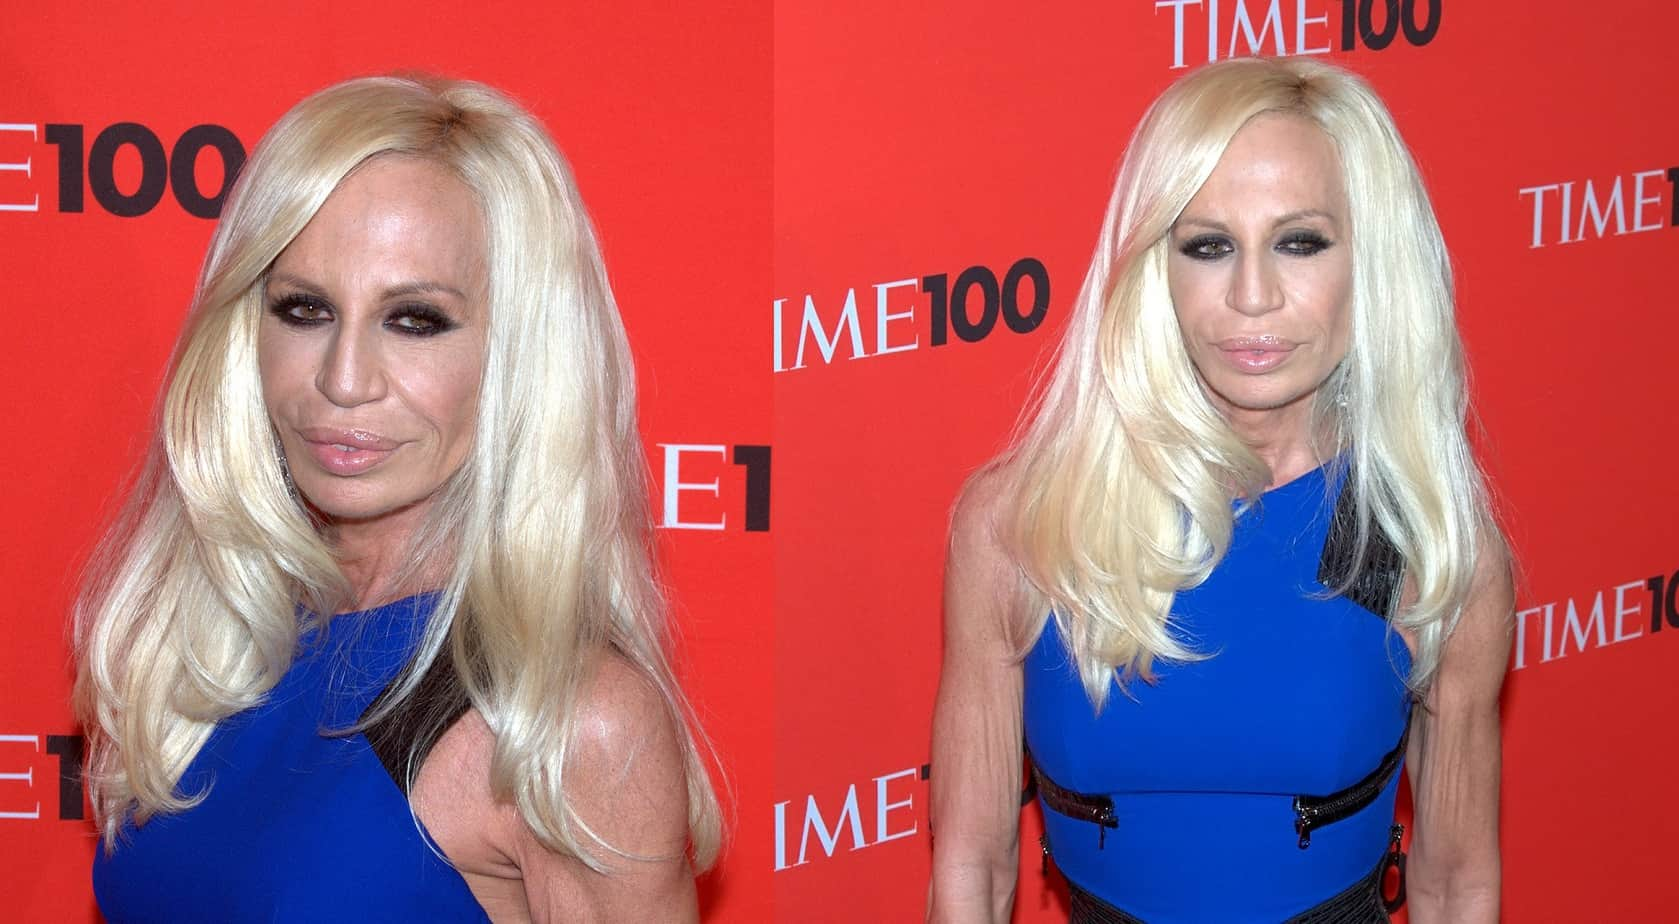 Donatella Versace - The worlds most successful fashion designer